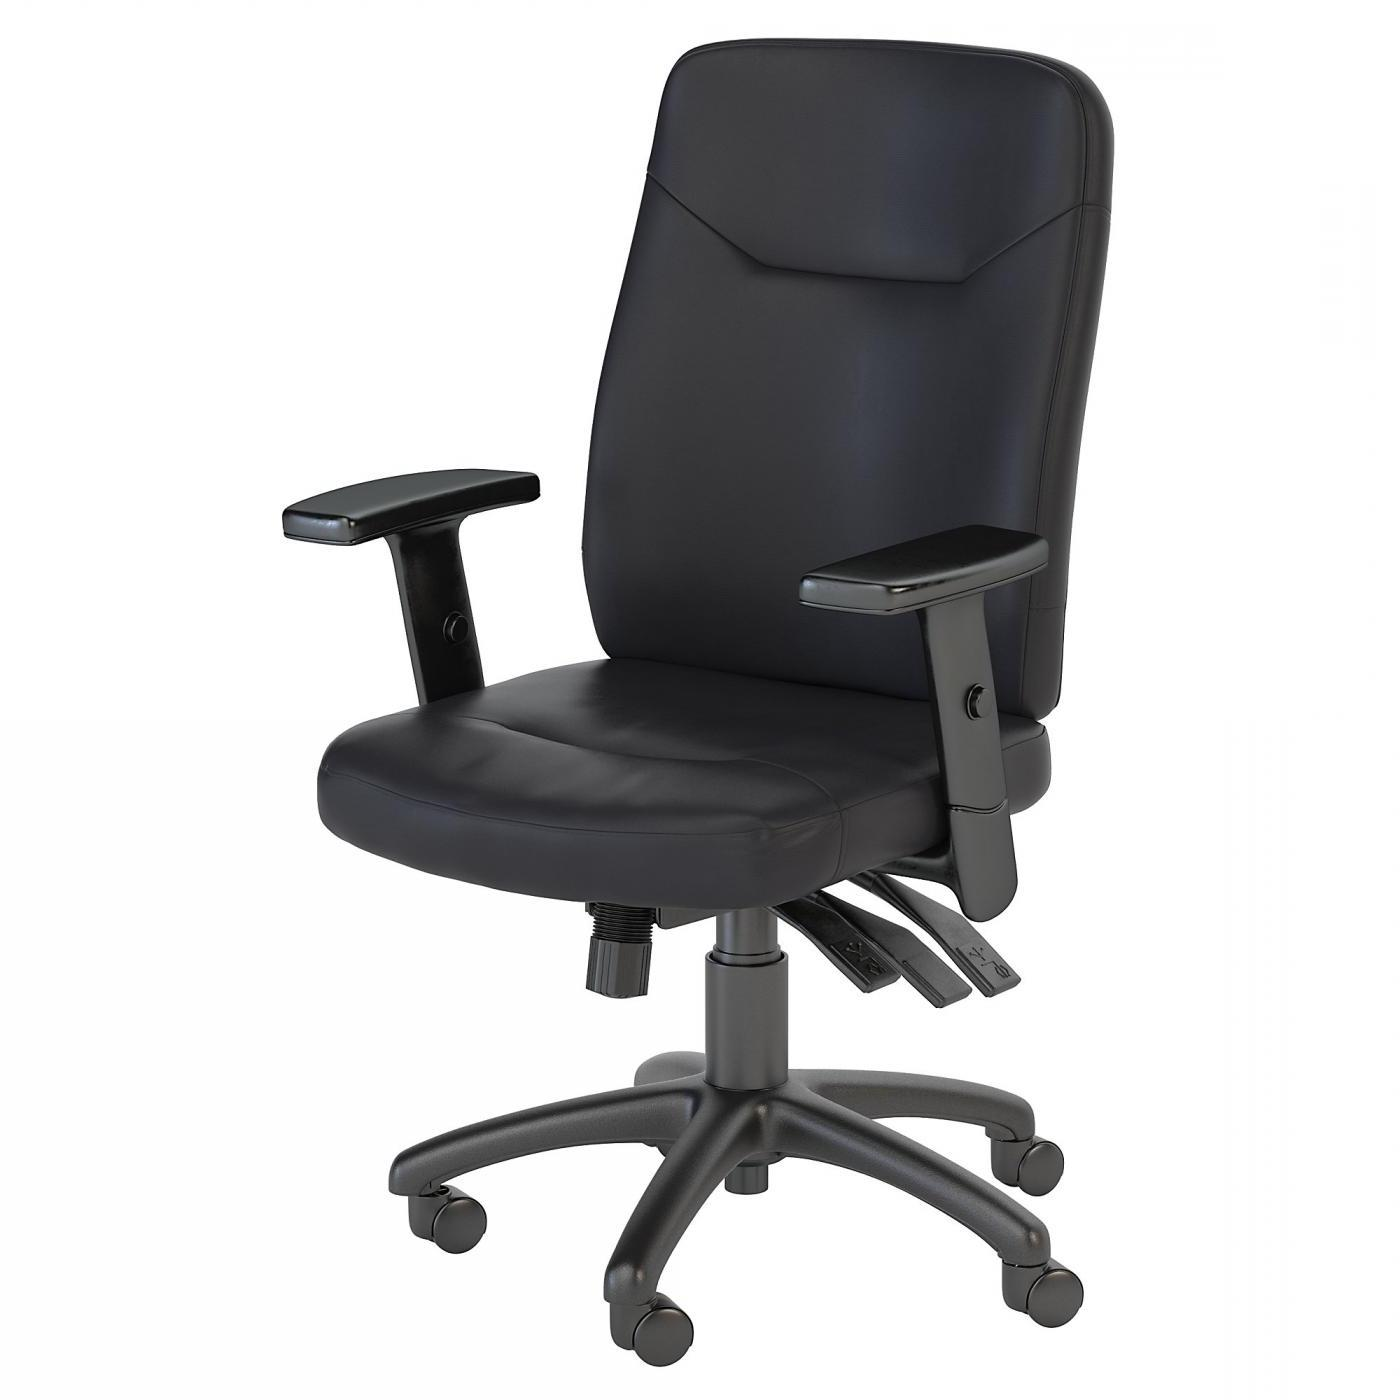 <font color=#c60><b>BUSH BUSINESS FURNITURE STANTON HIGH BACK MULTIFUNCTION LEATHER EXECUTIVE OFFICE CHAIR. FREE SHIPPING</font></b> </font></b></font></b>